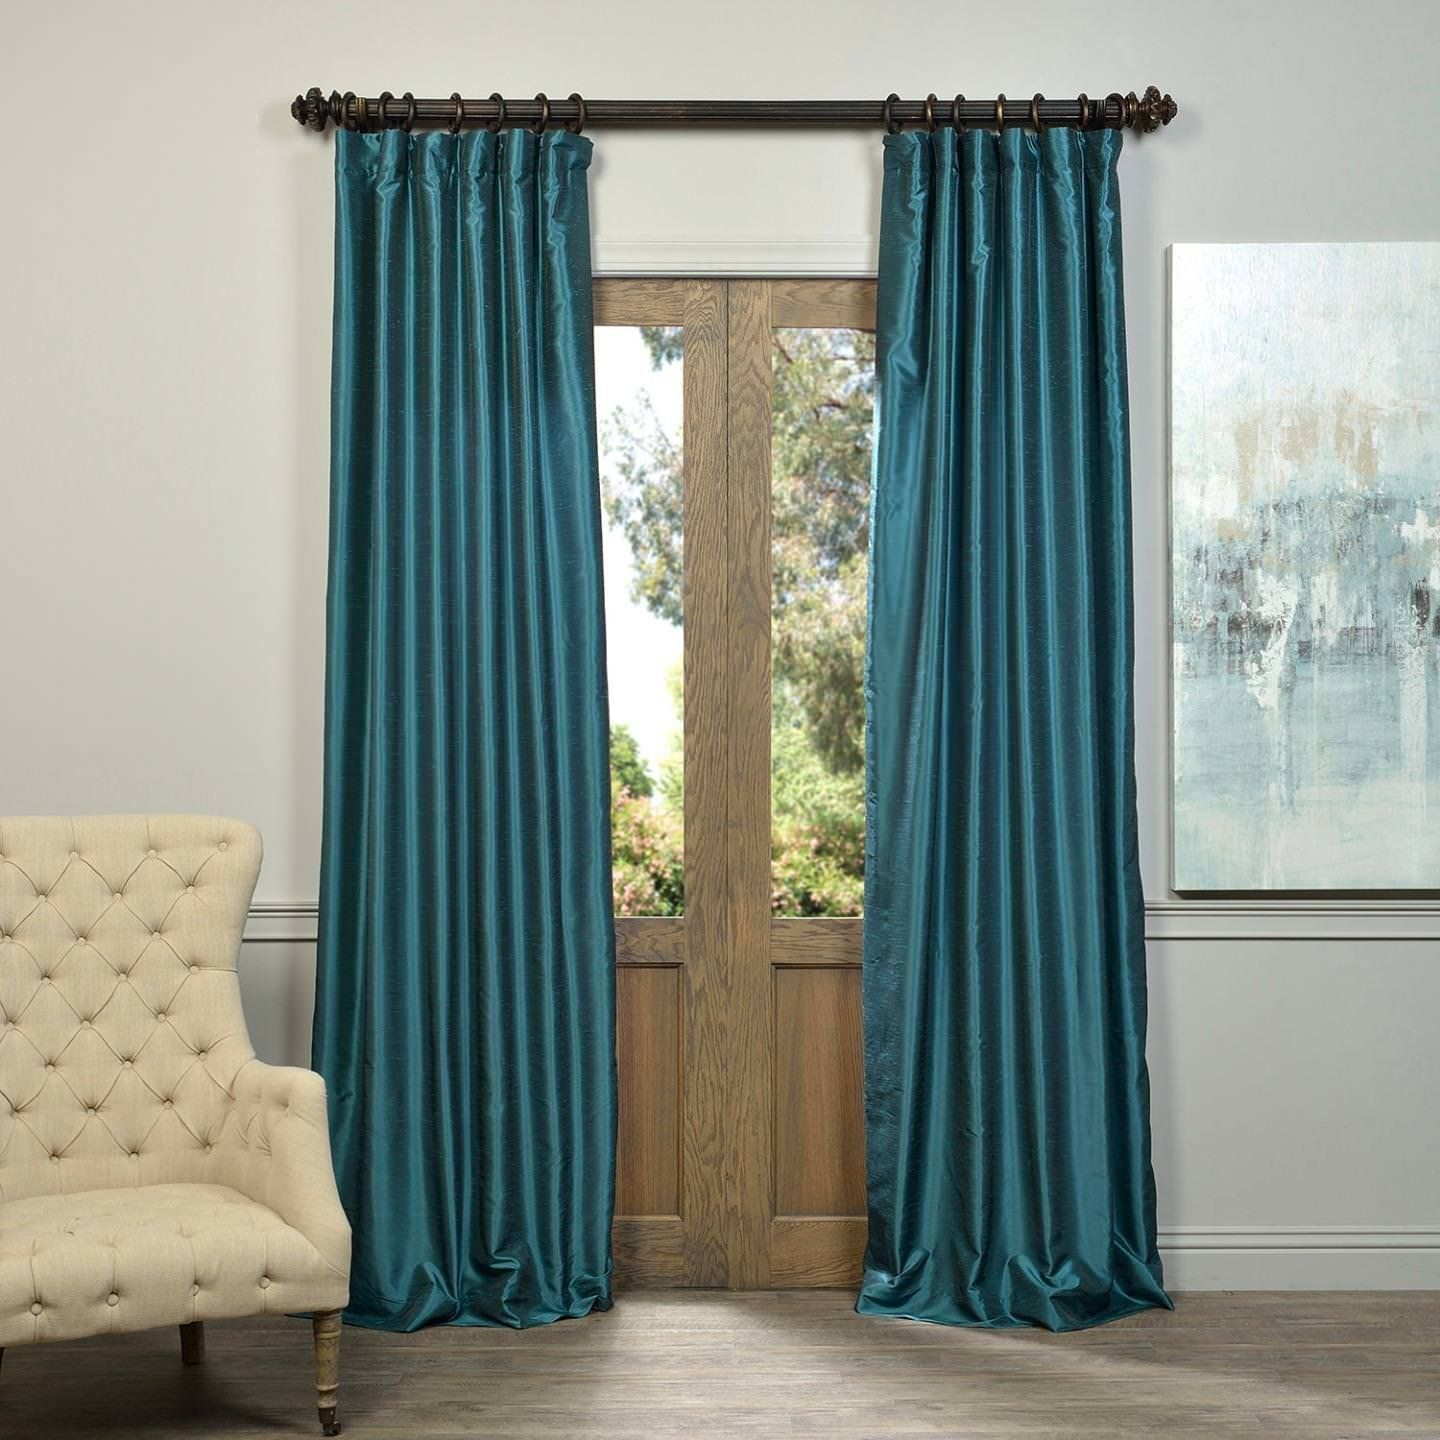 beige of uk size cream eulanguages blue navy curtain light white l thin purple striped fabric red gray green teal panels and dark patterned large grey drapes shower gold black stripe mustard long curtains